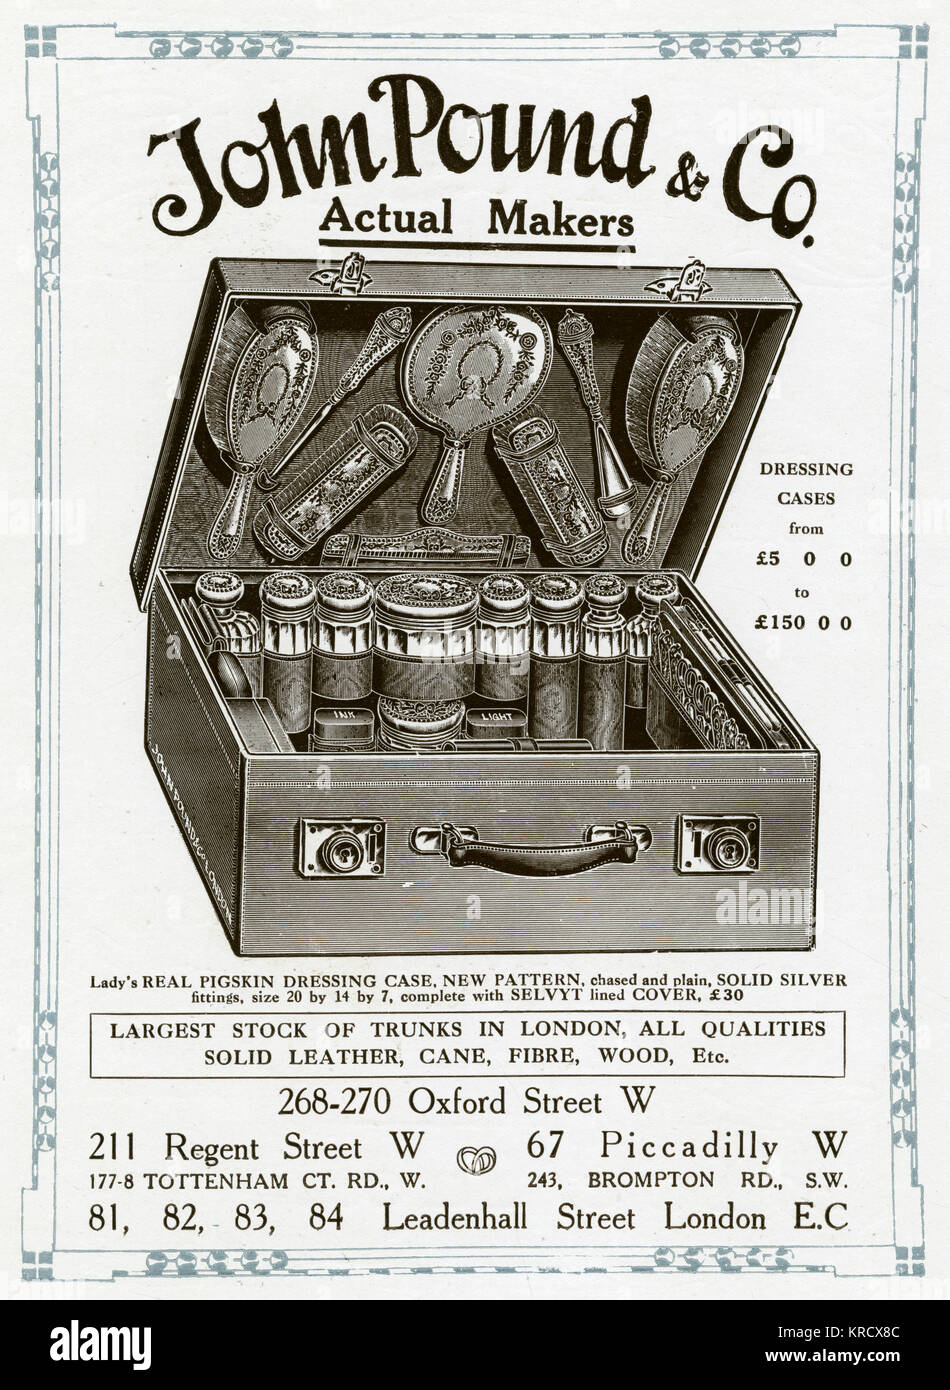 Lady's real pigskin dressing case, with solid silver fittings.  Advertisement John Pound & Co dressing - Stock Image